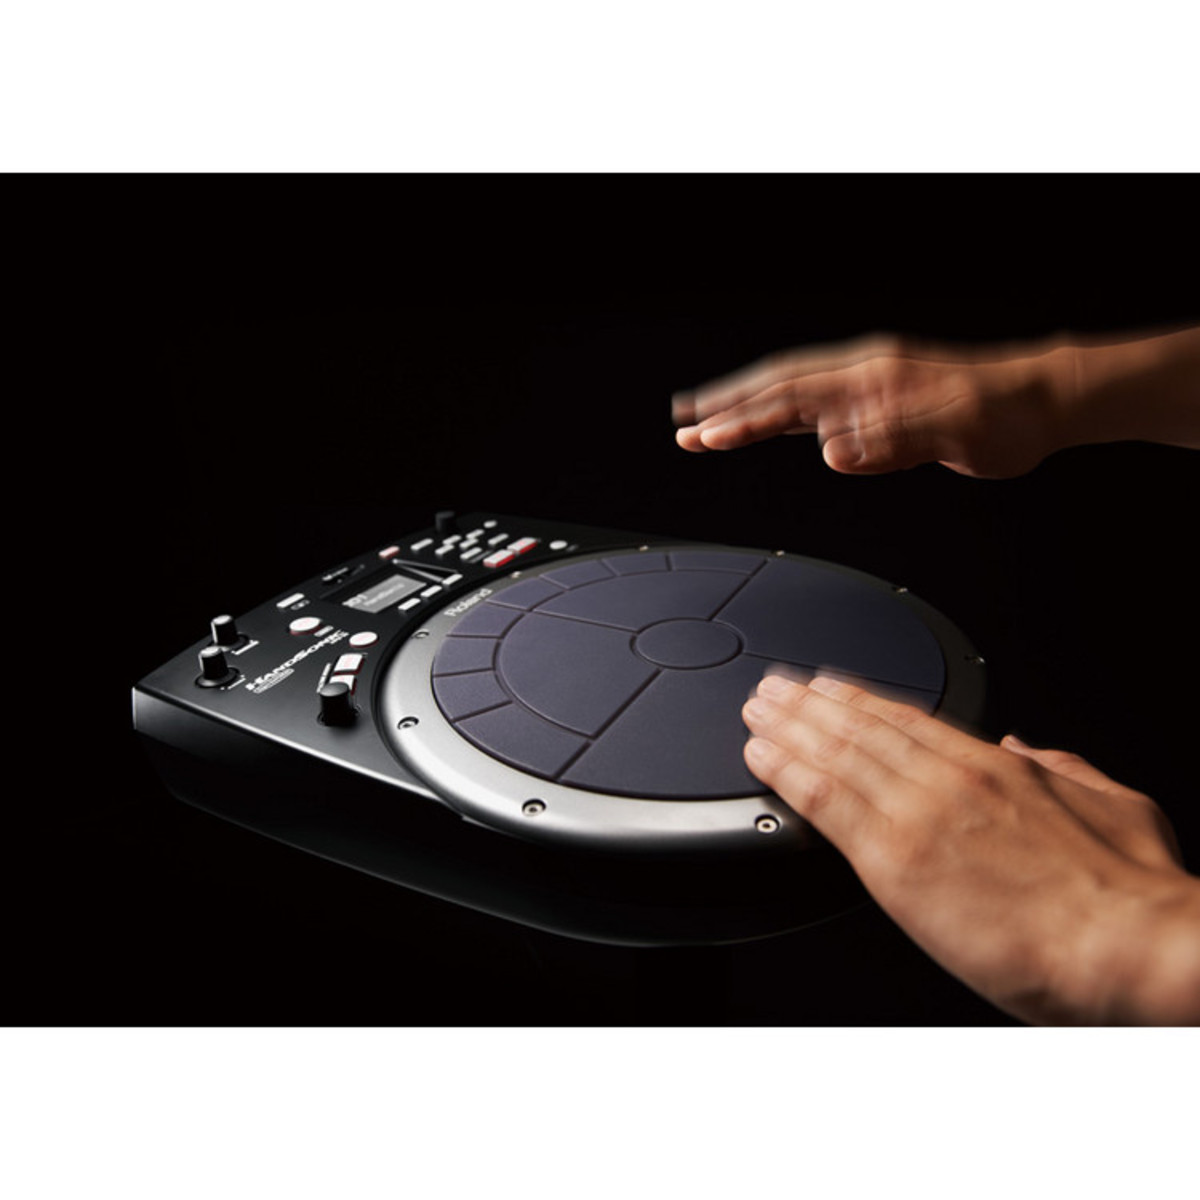 roland hpd 20 handsonic electronic percussion pad at. Black Bedroom Furniture Sets. Home Design Ideas